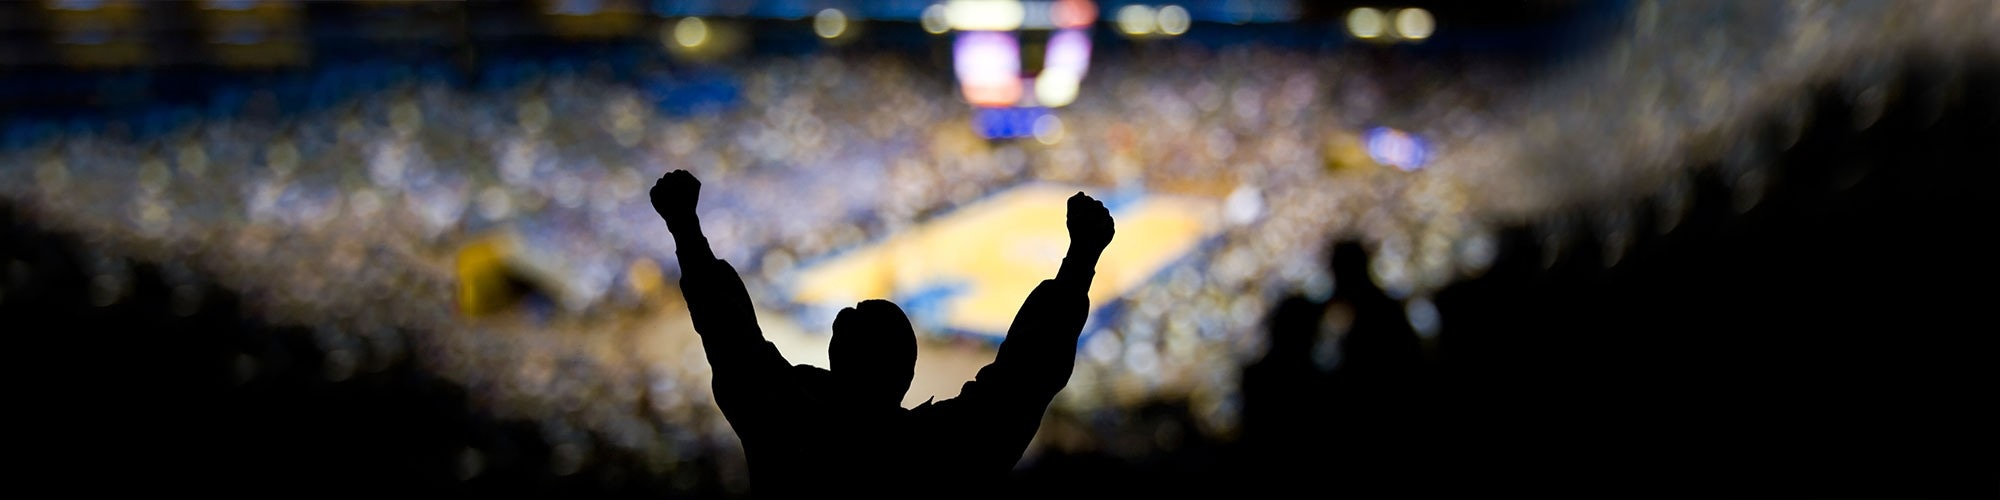 shadow of basketball fan pumping fist agains light of court